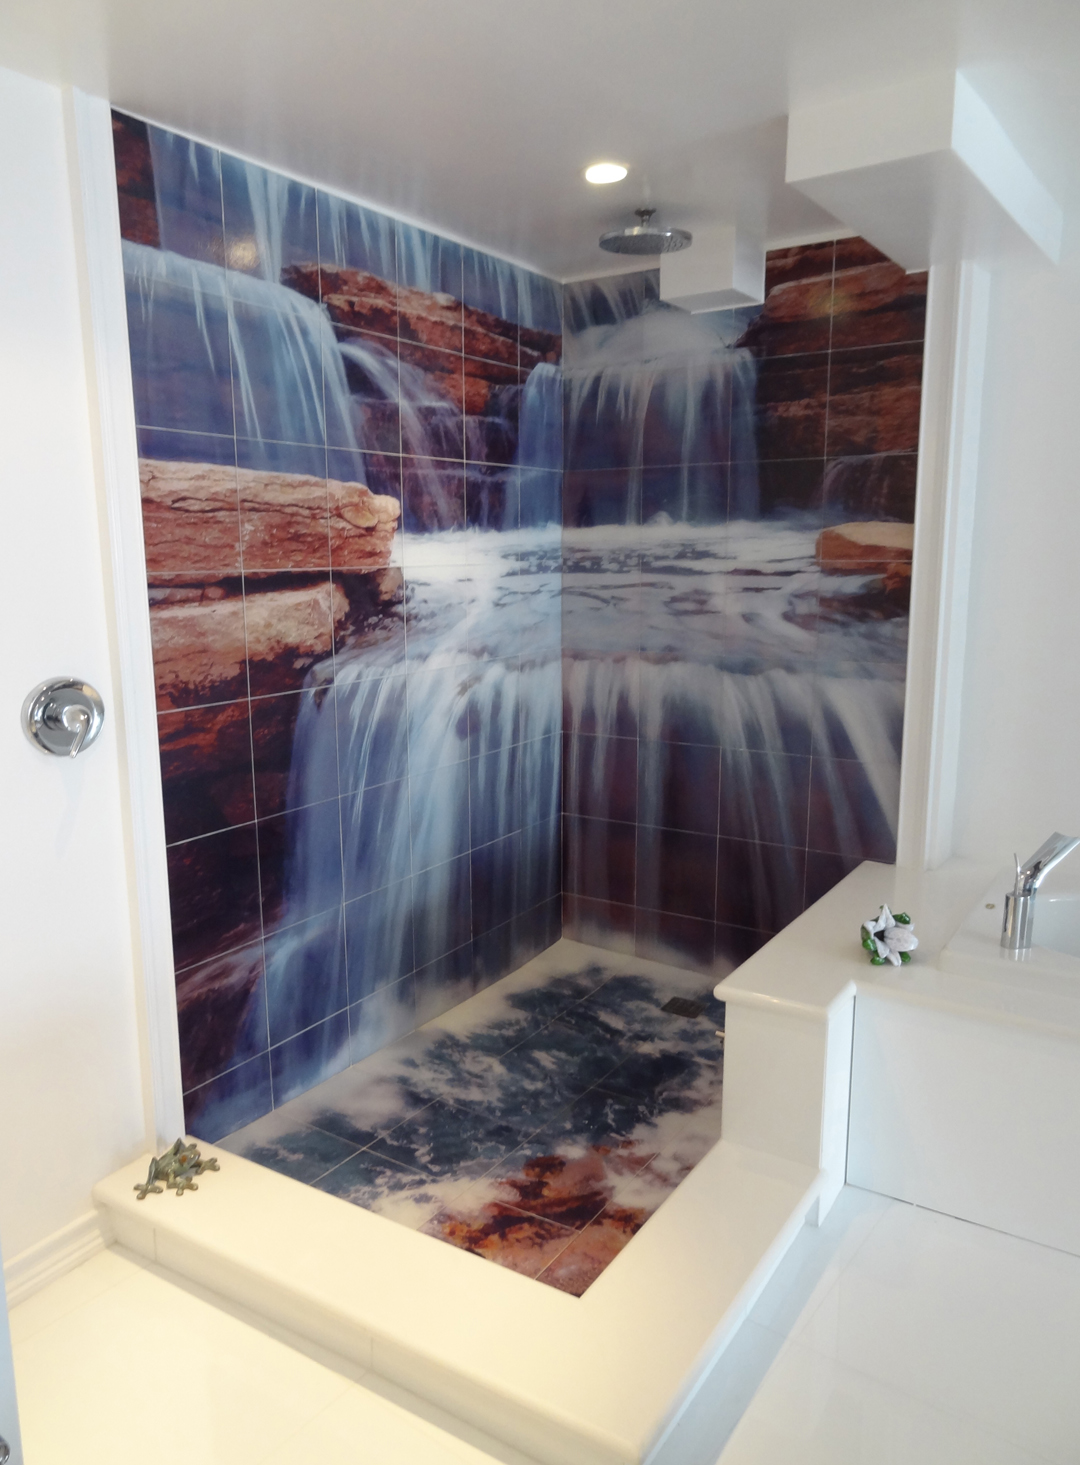 You may have seen pictures elsewhere but we are the manufacturer of these beautiful waterfall shower tile murals we have successfully custom fit many